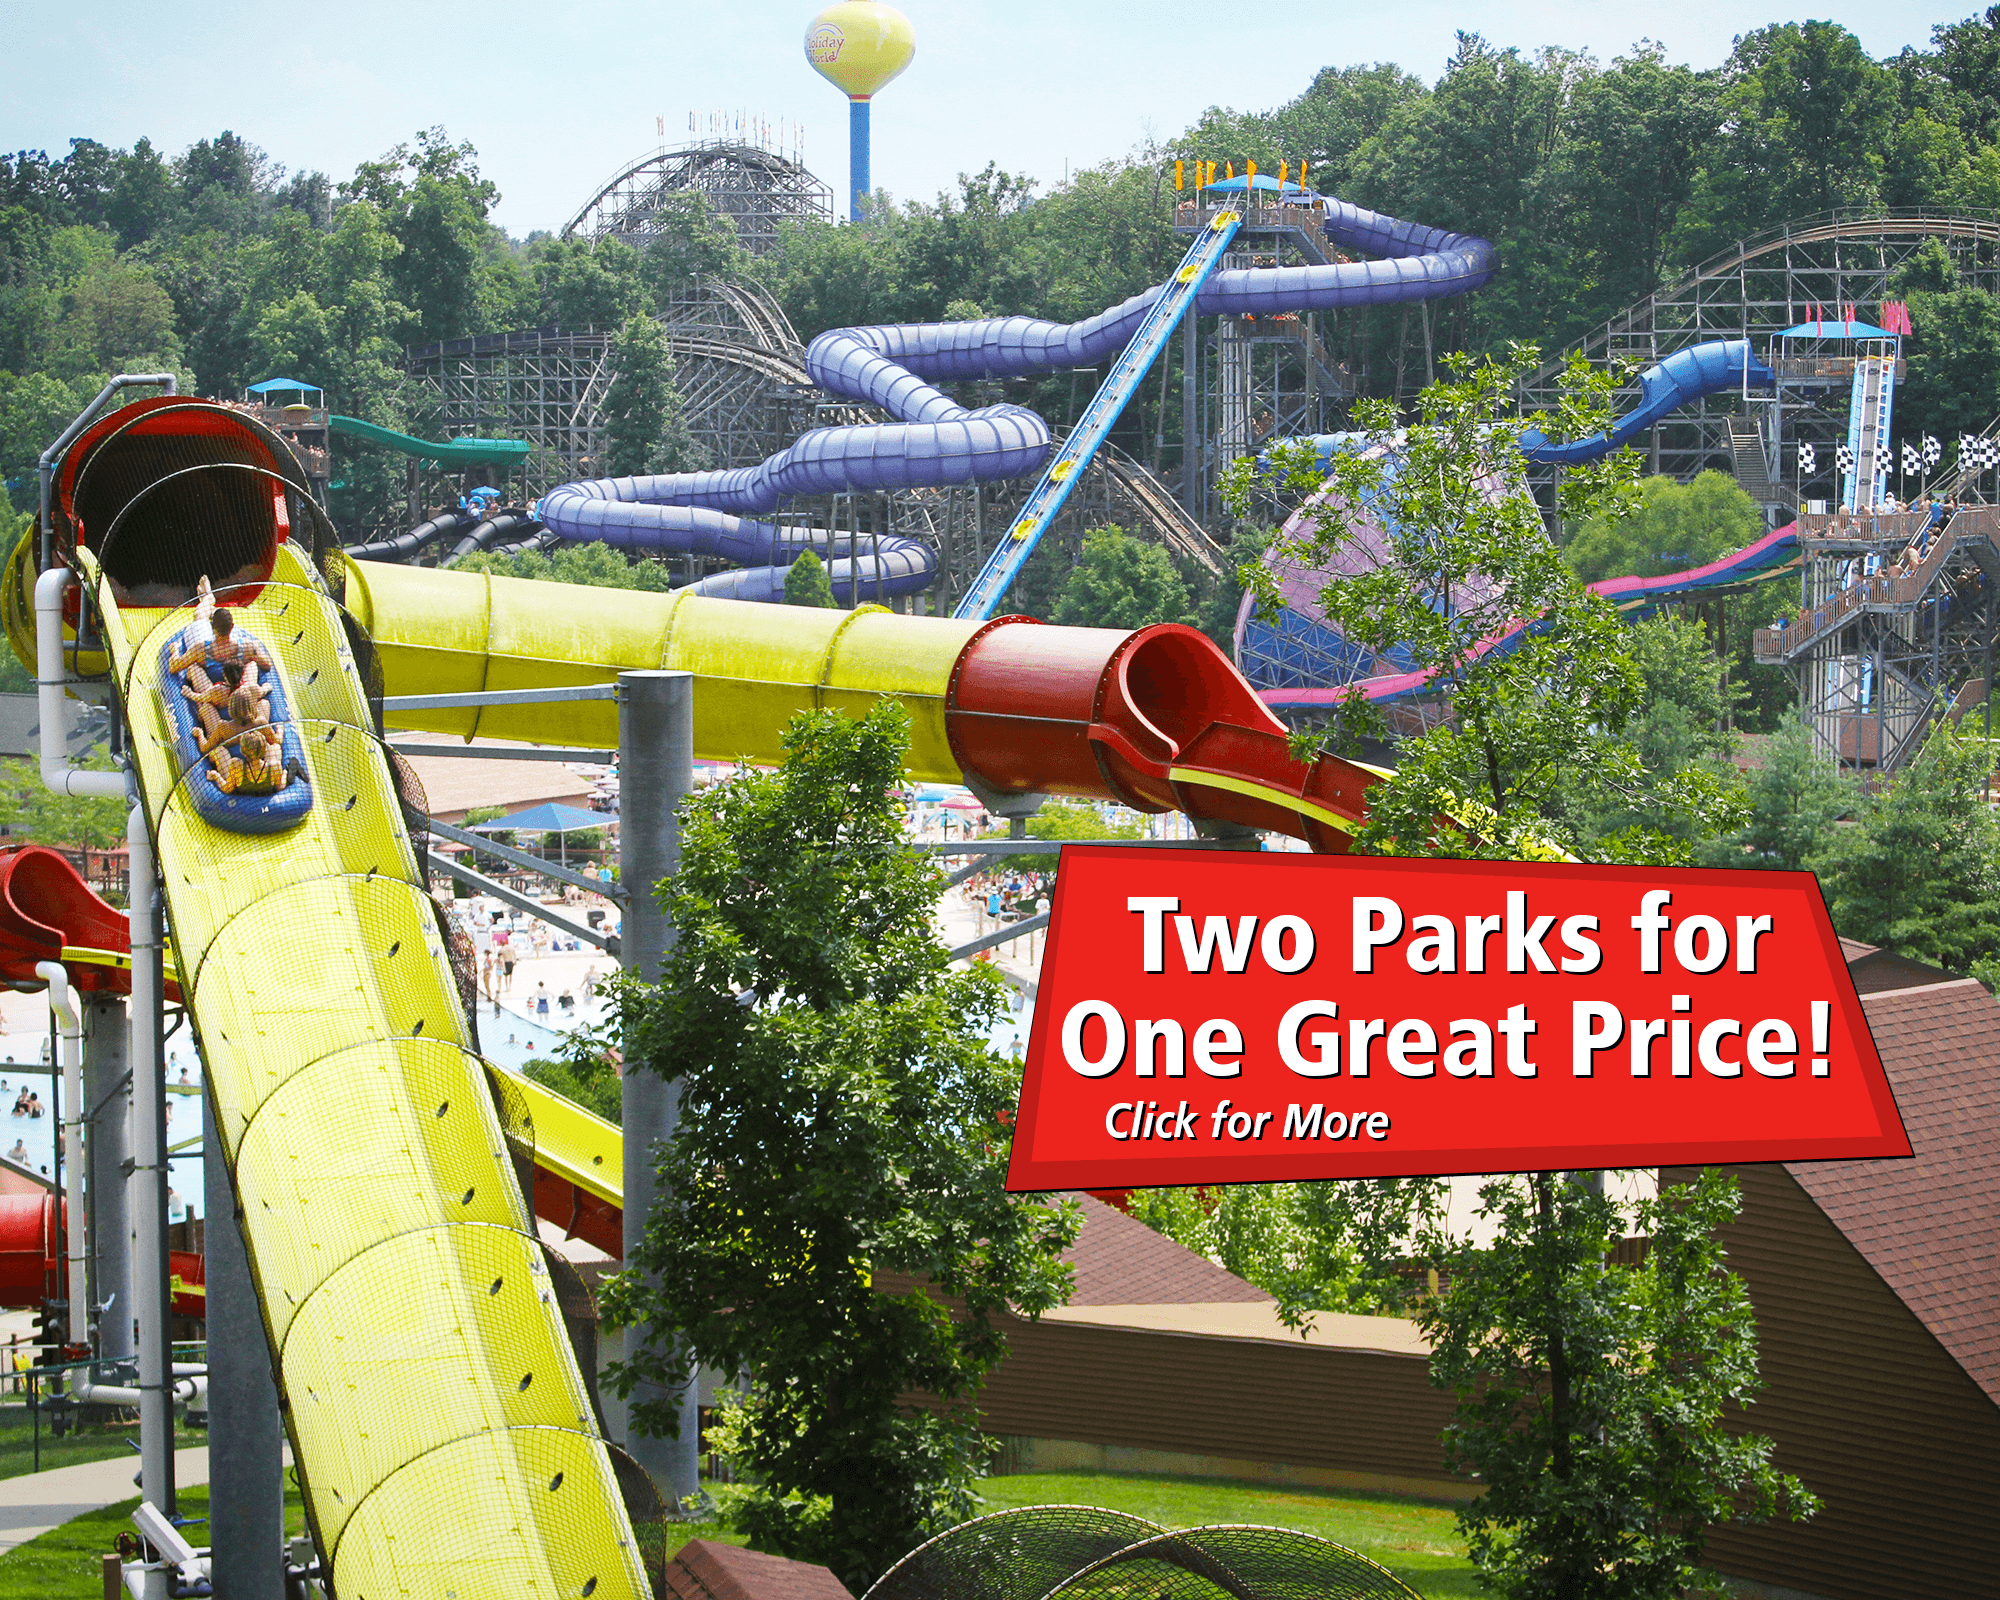 Two Parks for One Great Price! Click to purchase tickets now.